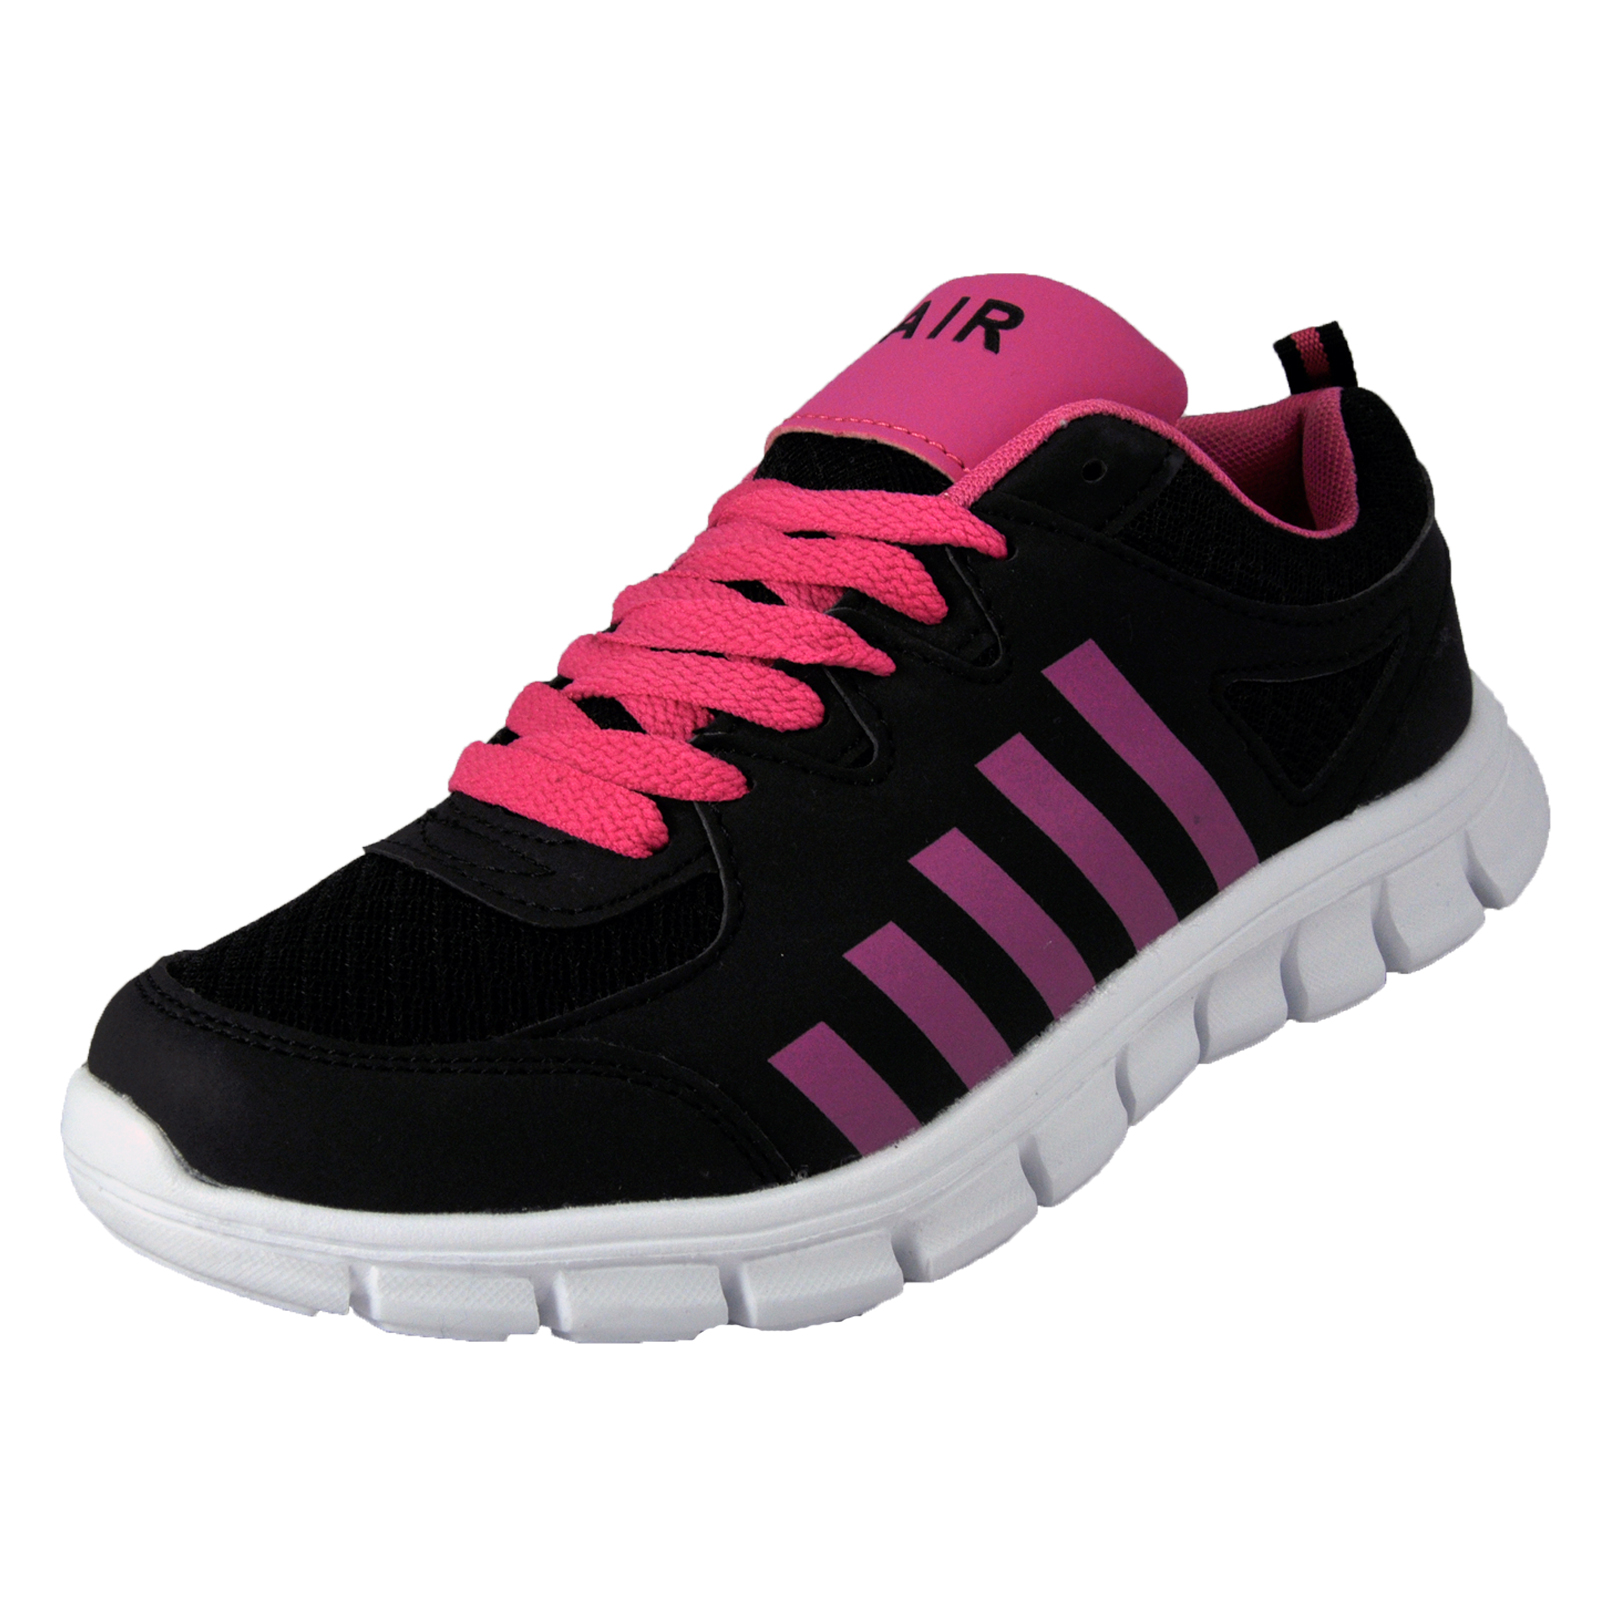 Airtech-Womens-Revenge-Shock-Absorbing-Running-Gym-Trainers-Black-AUTHENTIC